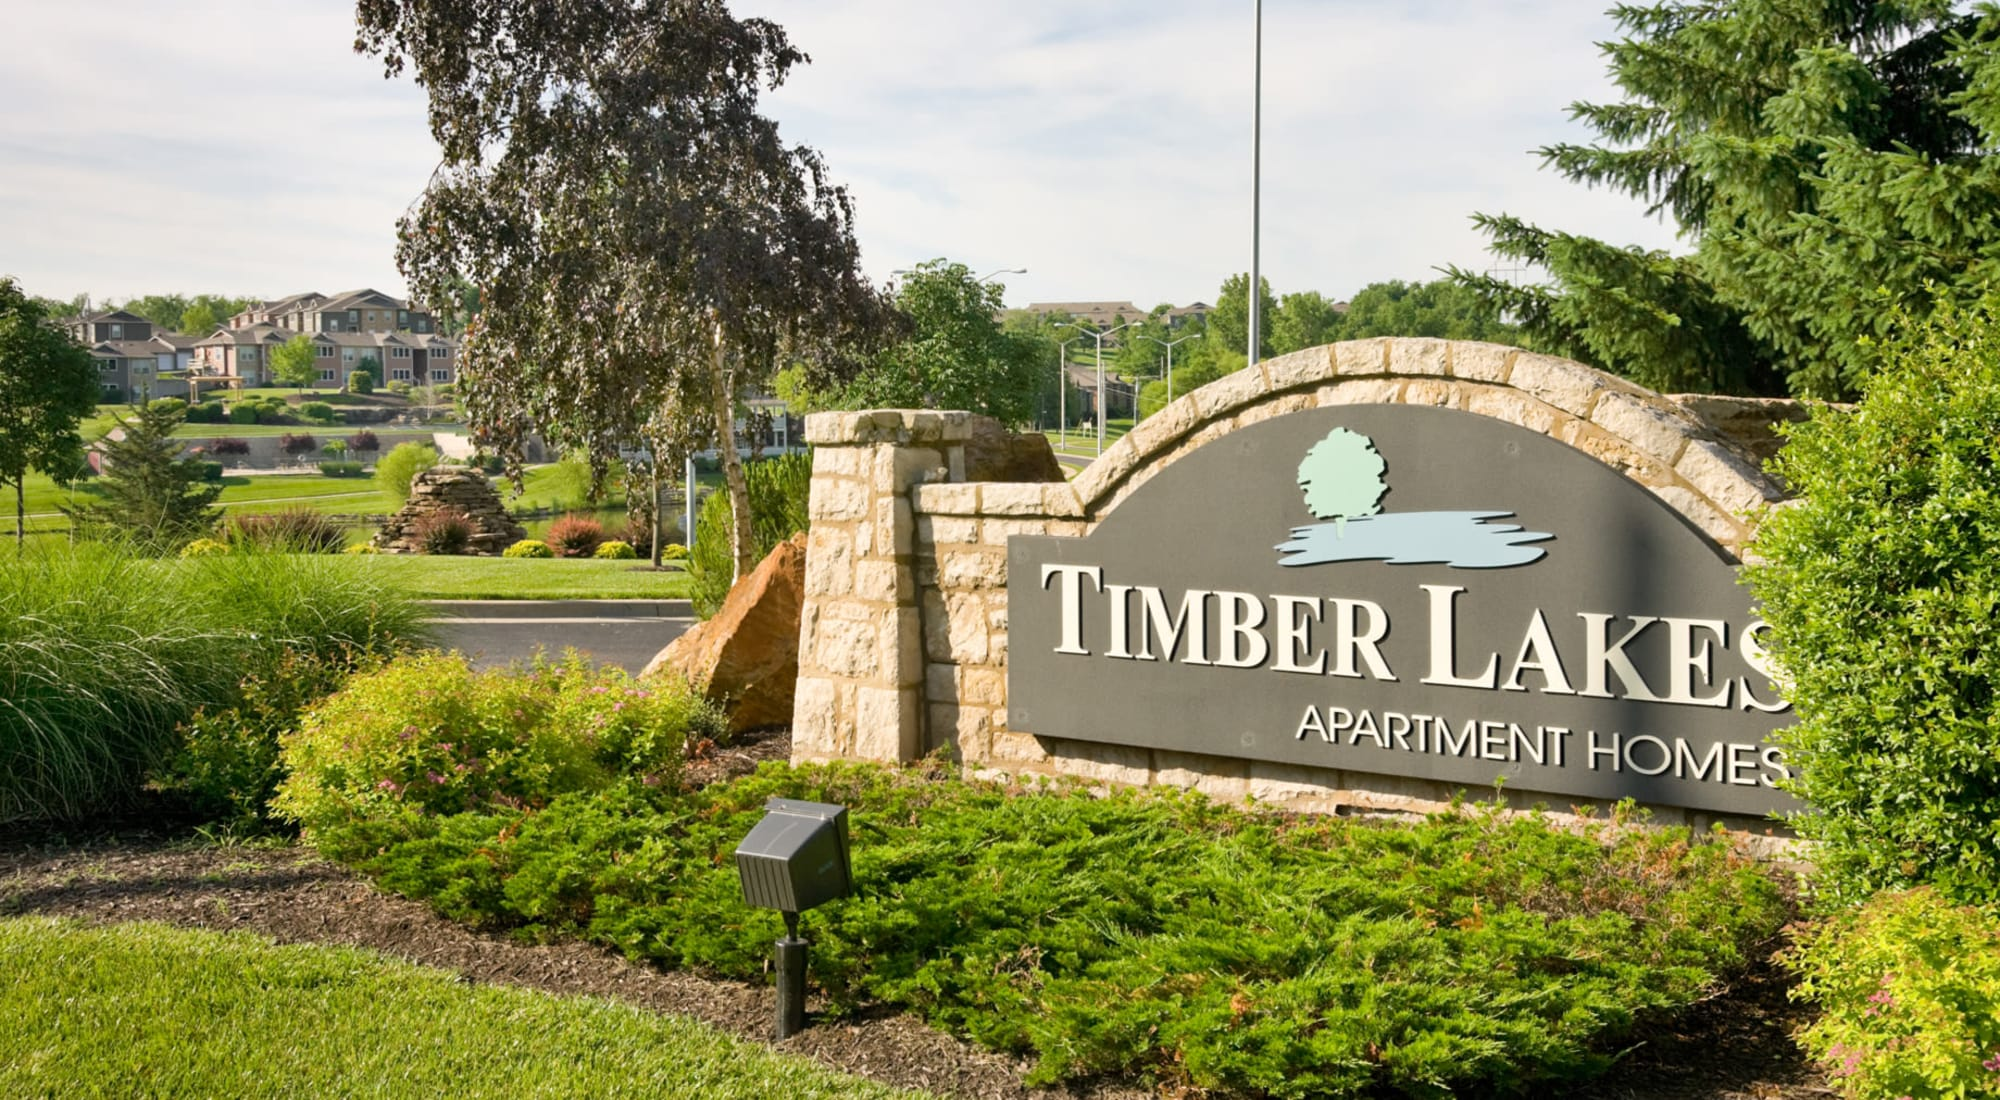 Neighborhood at Timber Lakes Apartment Homes in Kansas City, Missouri